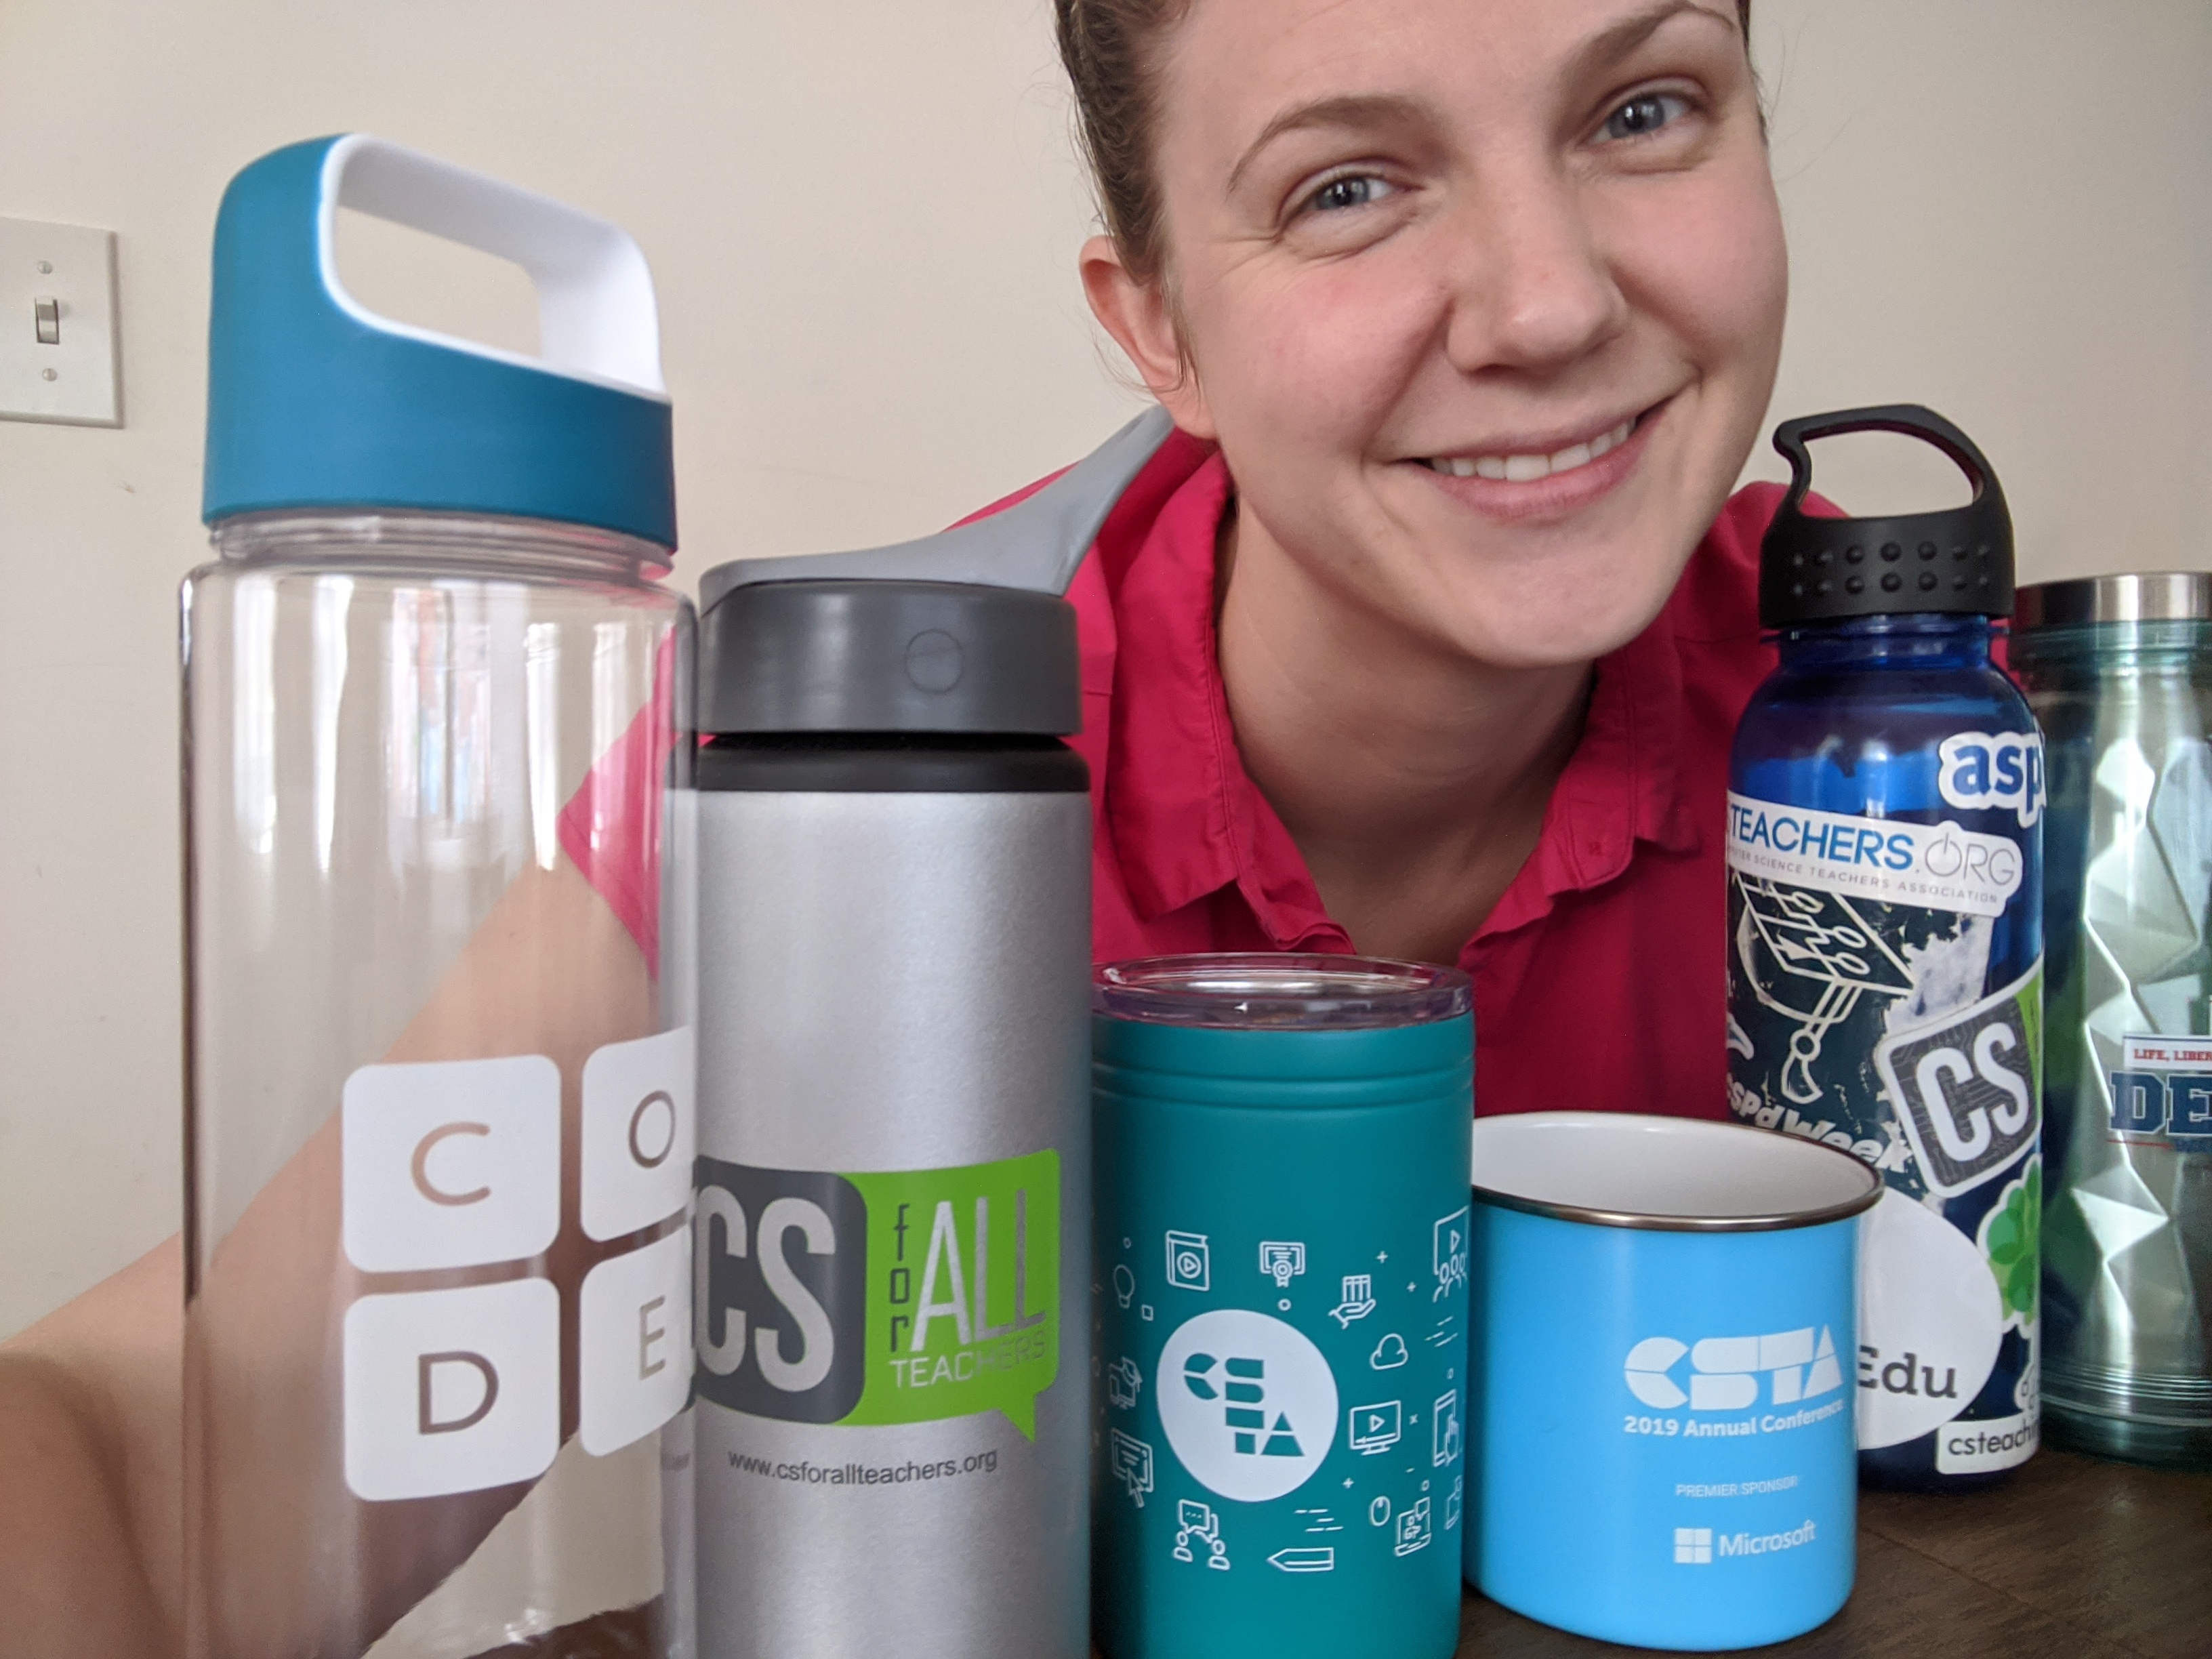 Rebekah Lang poses with water bottles with CS stickers on them.